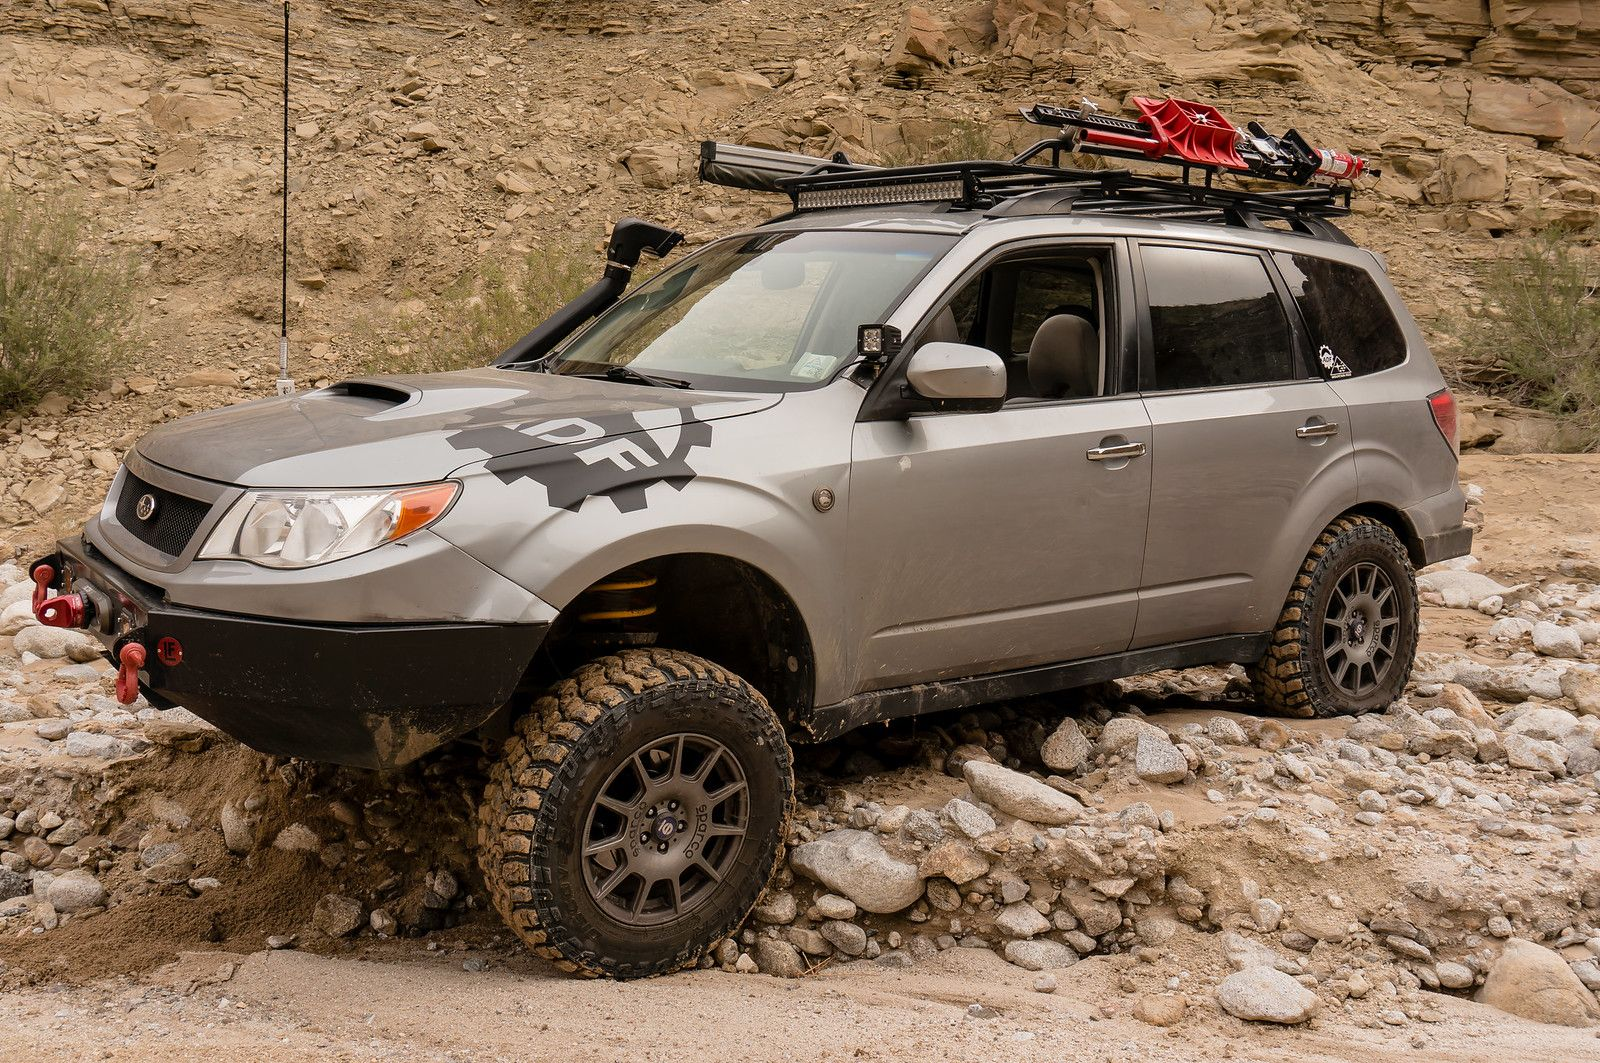 09 13 Overland Build Thread Subaru Forester Owners Forum In 2020 Subaru Forester Subaru Subaru Outback Offroad